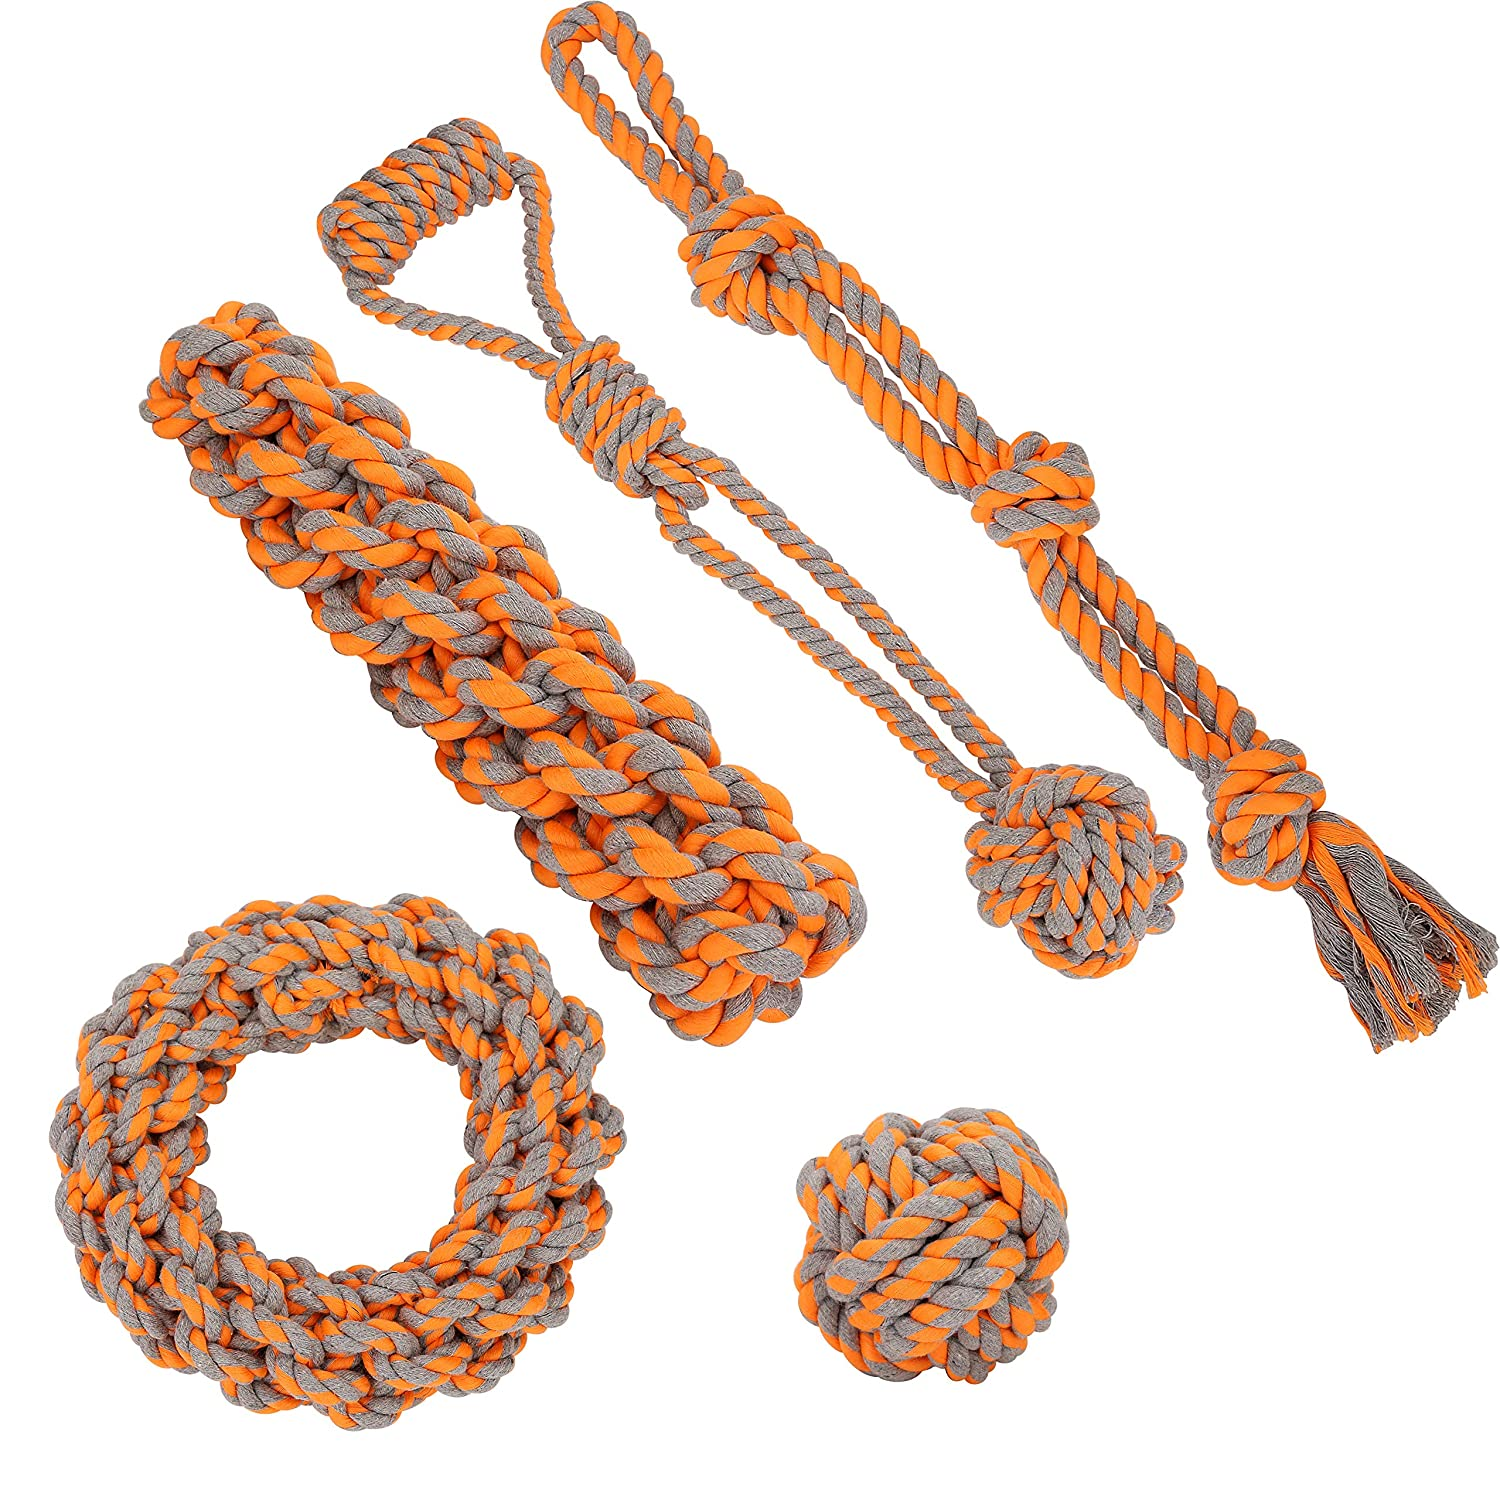 CHONGAI Puppy Dog Pet Rope Toys Medium to Large Dogs Set of 5 Nearly Indestructible Dog Toys